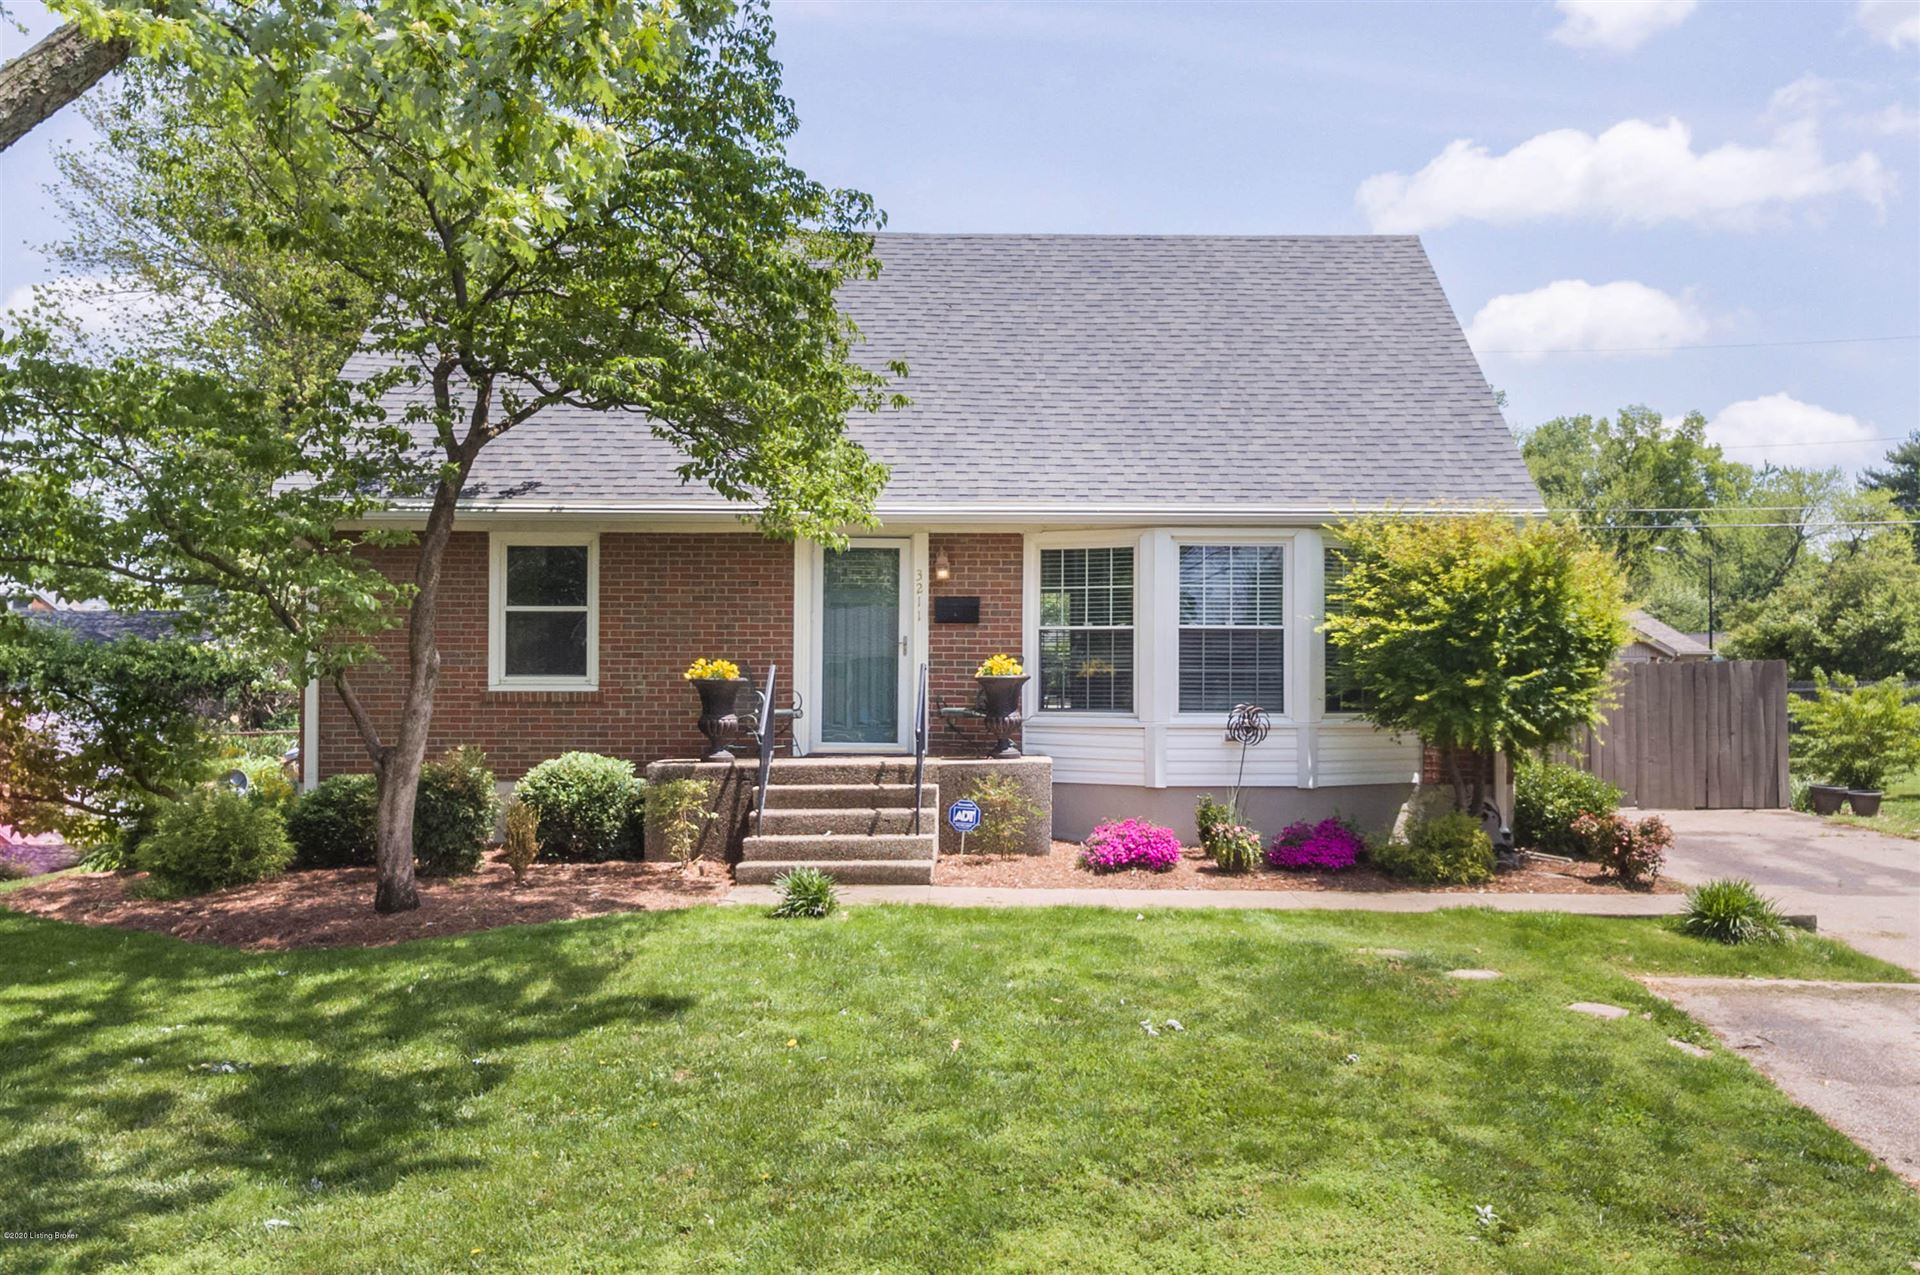 Property Image Of 3211 Radiance Rd In Louisville, Ky